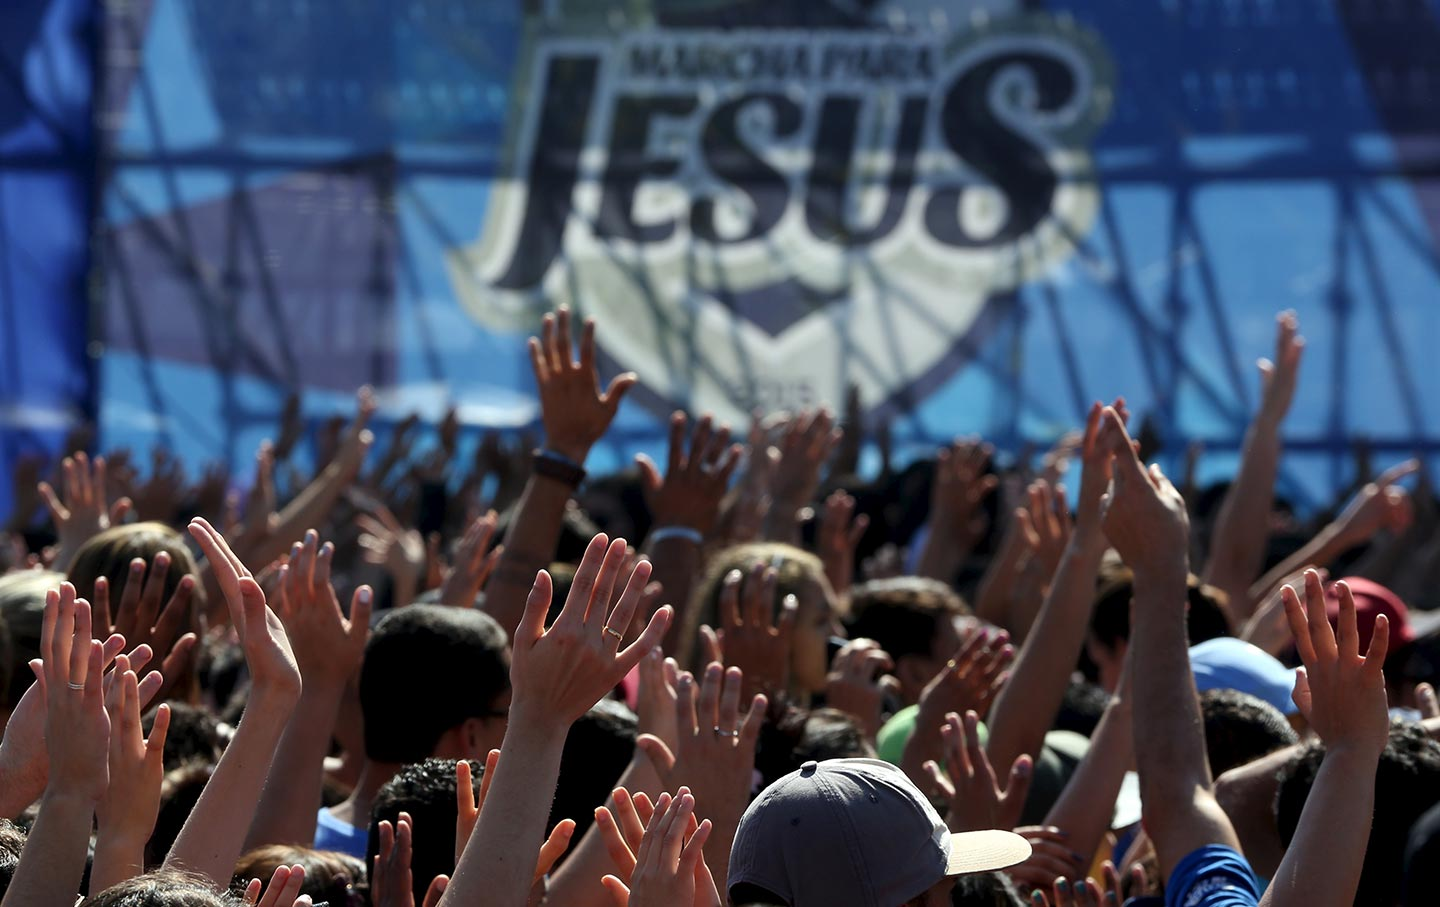 Thousands of people attend the March for Jesus in São Paulo, Brazil, on June 4, 2015.